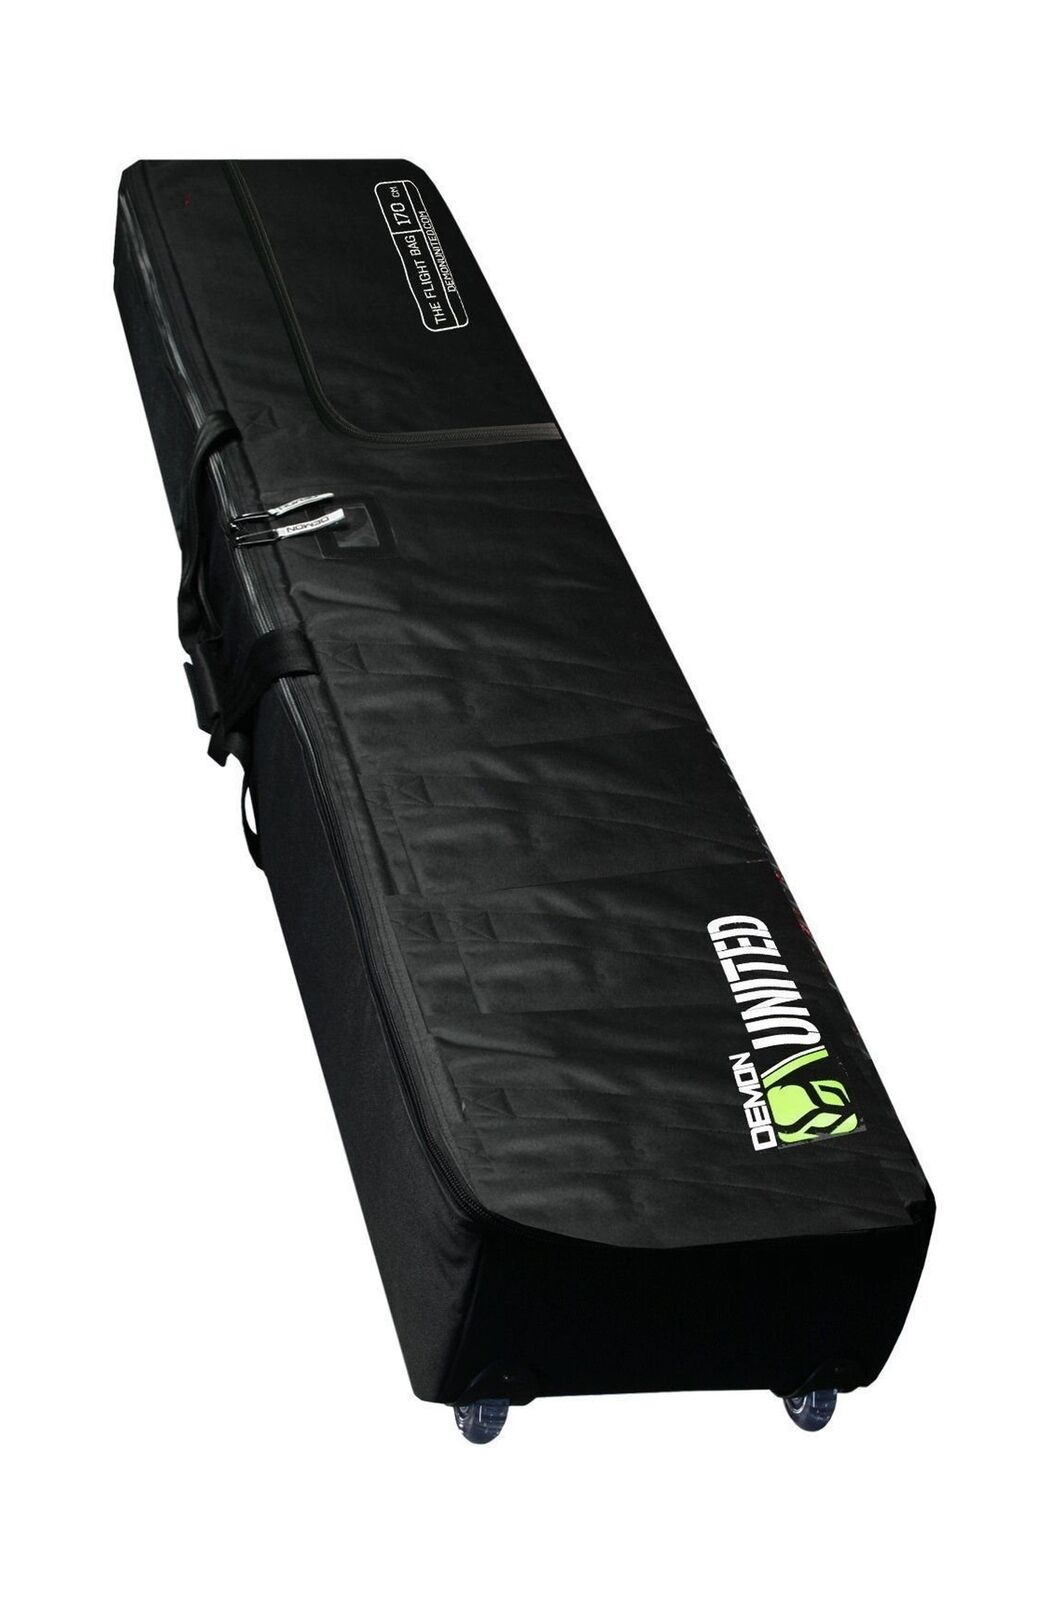 Fully Padded Travel Snowboard Bag with WHEELS